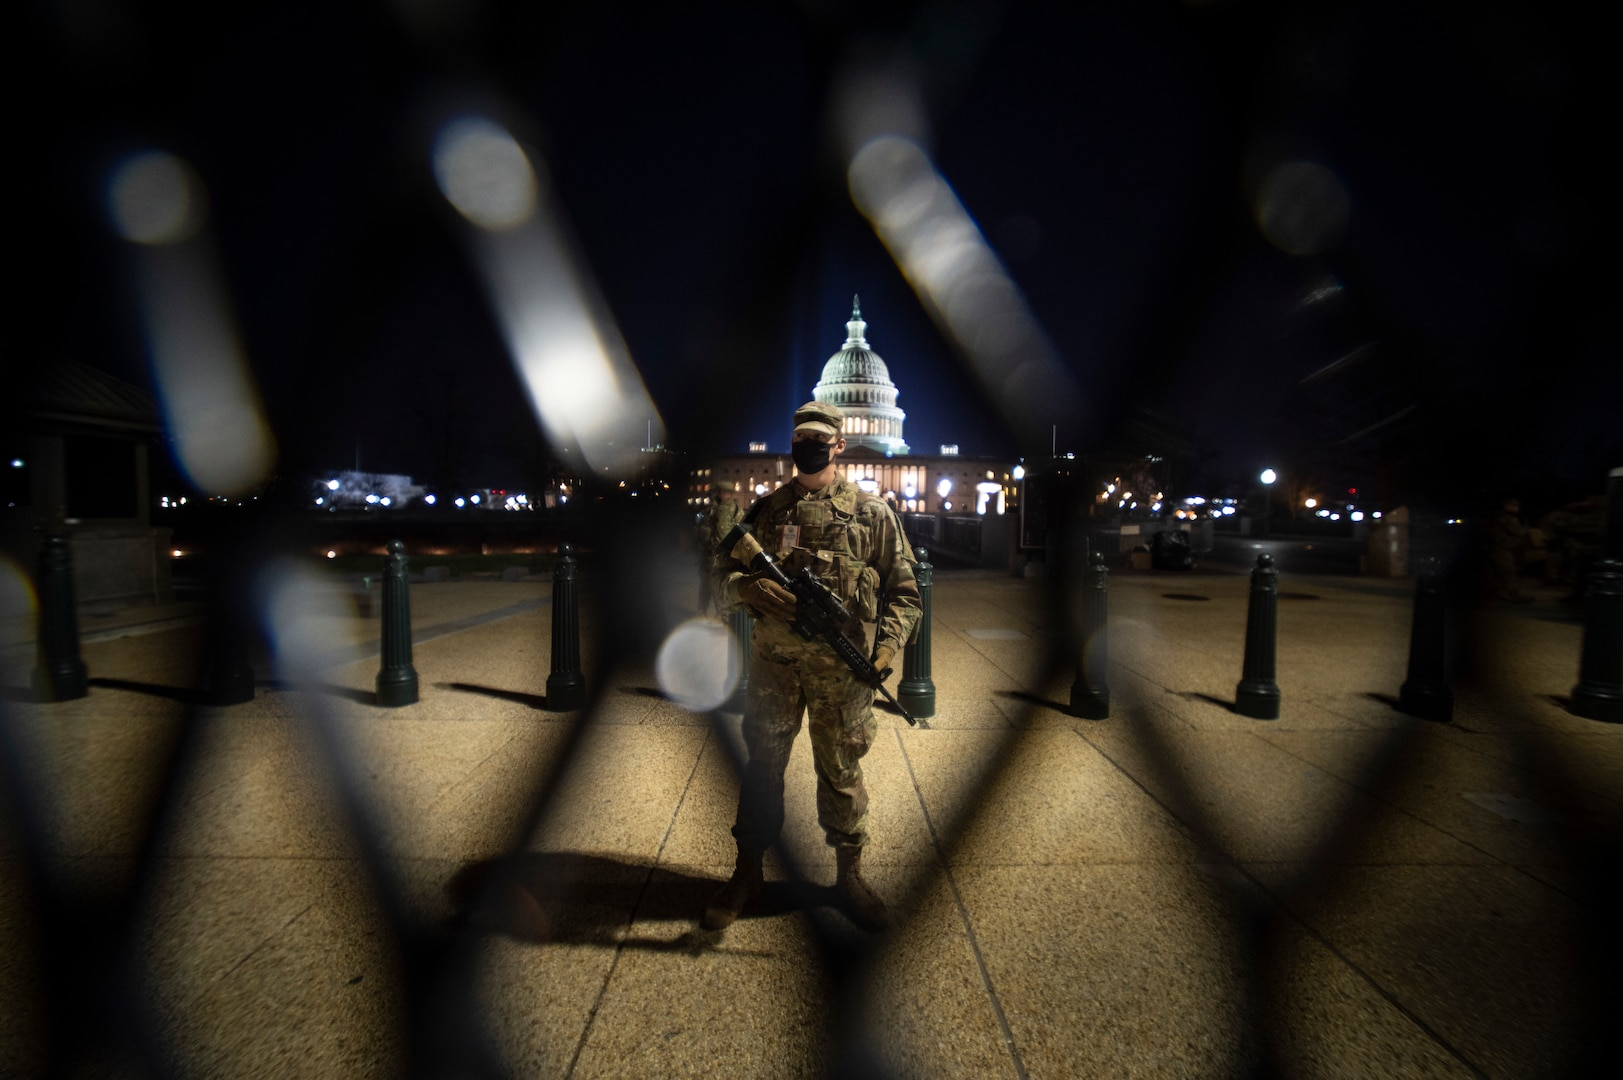 An Oklahoma Army National Guard Soldier stands watch at the U.S. Capitol building, Jan. 19, 2021. At least 25,000 National Guard men and women have been authorized to conduct security, communication and logistical missions in support of federal and District authorities leading up to and through the 59th Presidential Inauguration. (U.S. National Guard photo by Sgt. Anthony Jones)